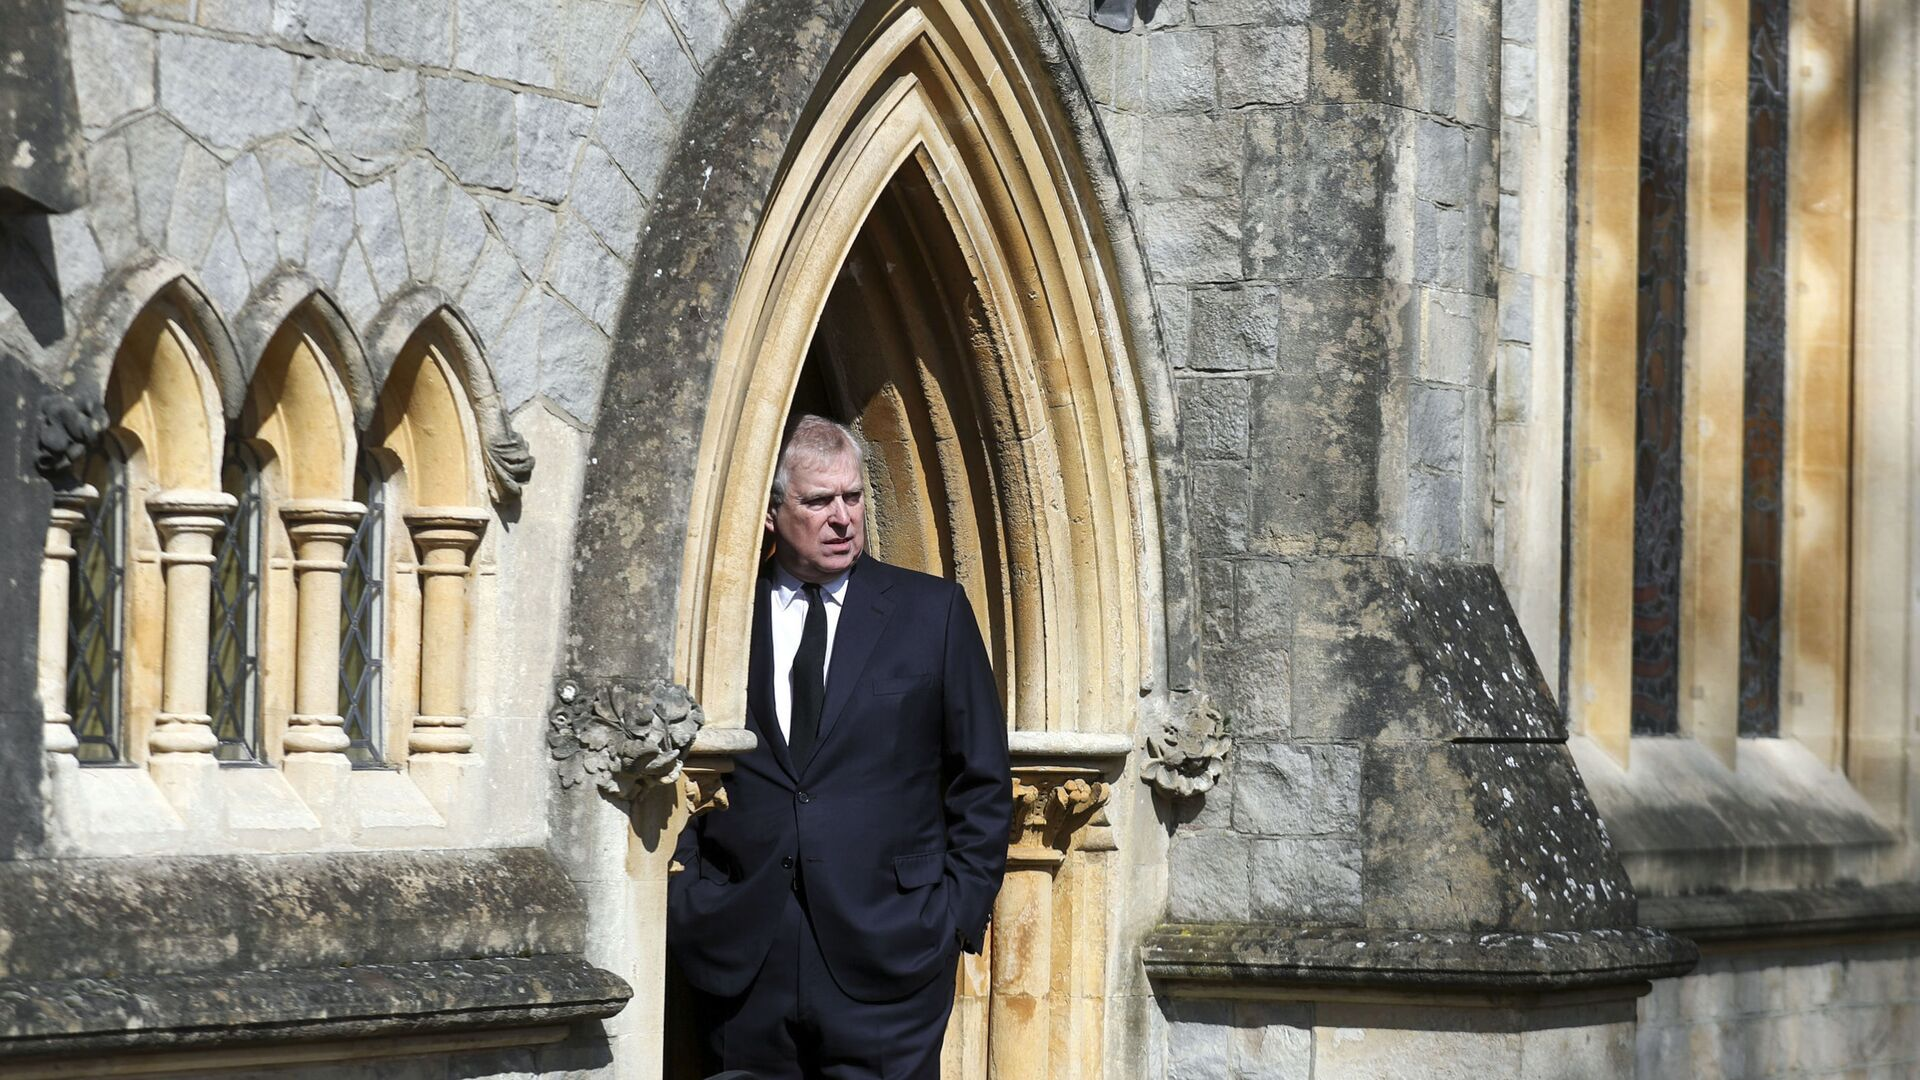 Britain's Prince Andrew attends the Sunday service at the Royal Chapel of All Saints at Royal Lodge, Windsor, following the death announcement of his father, Prince Philip, in England, Sunday, April 11, 2021. - Sputnik International, 1920, 10.09.2021